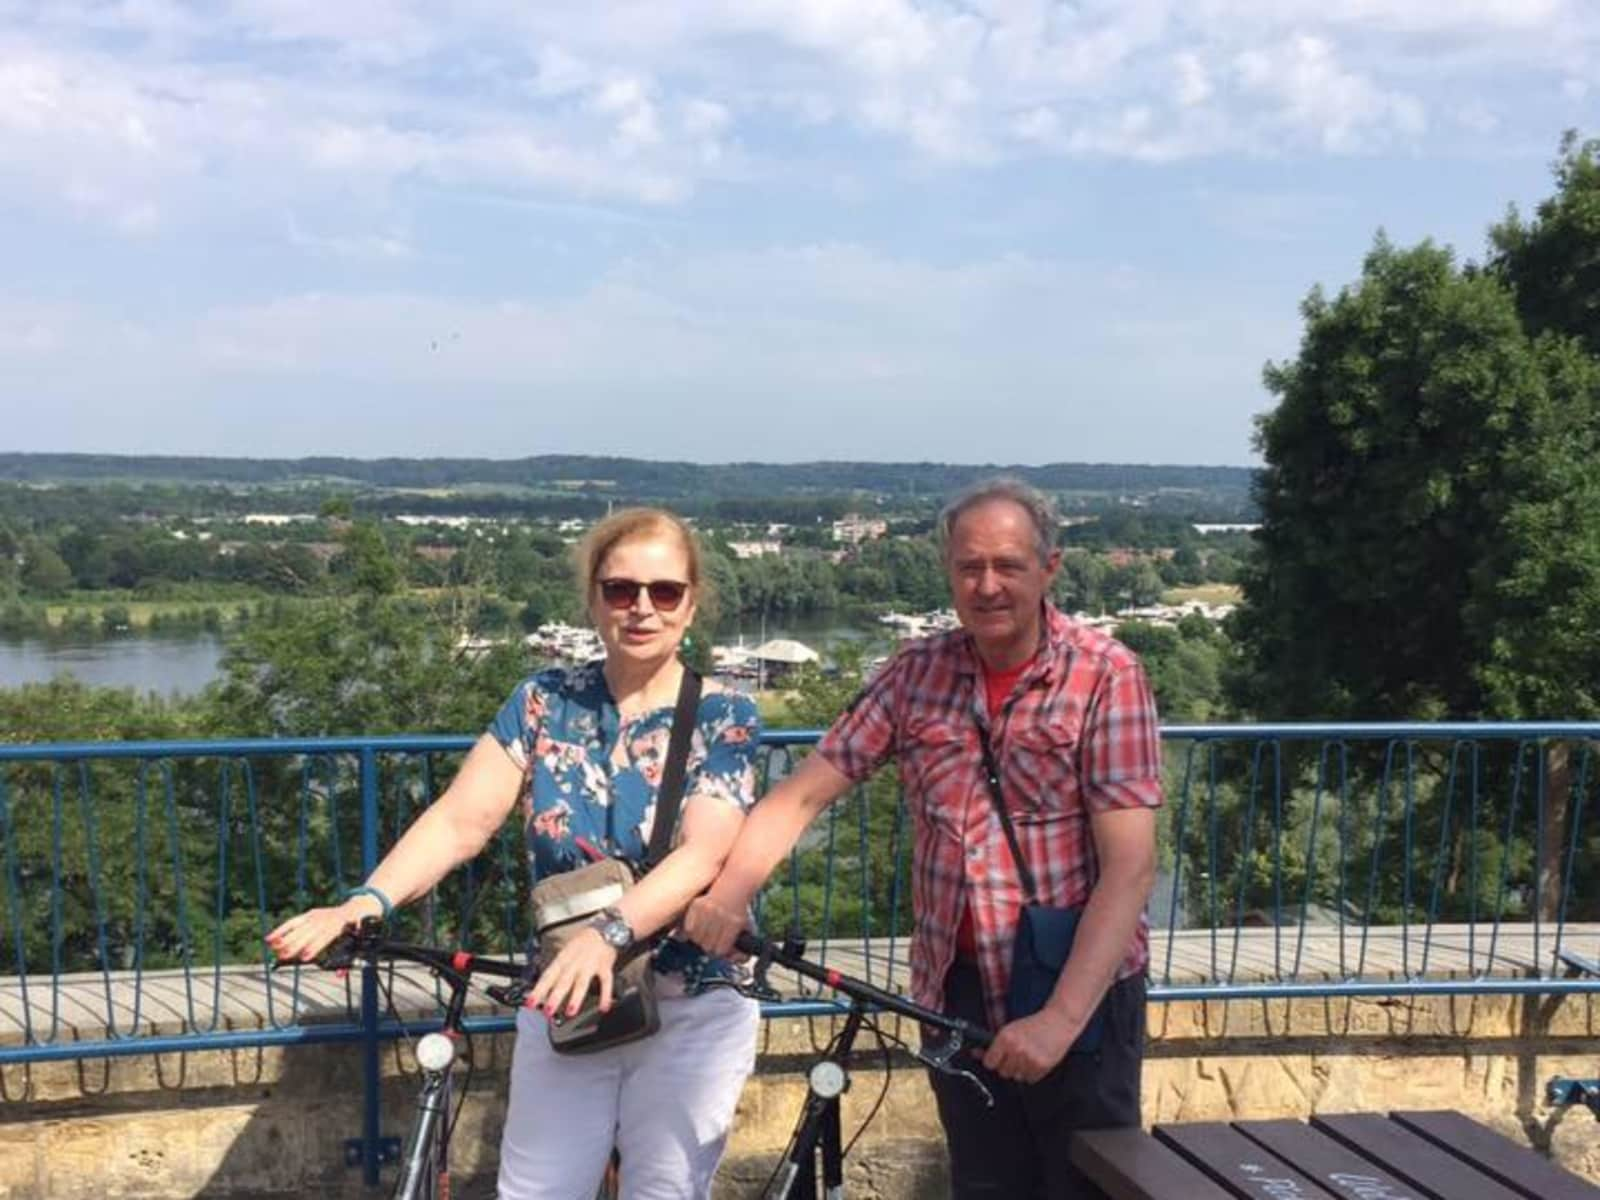 Sheila & Ron from Almere Stad, Netherlands